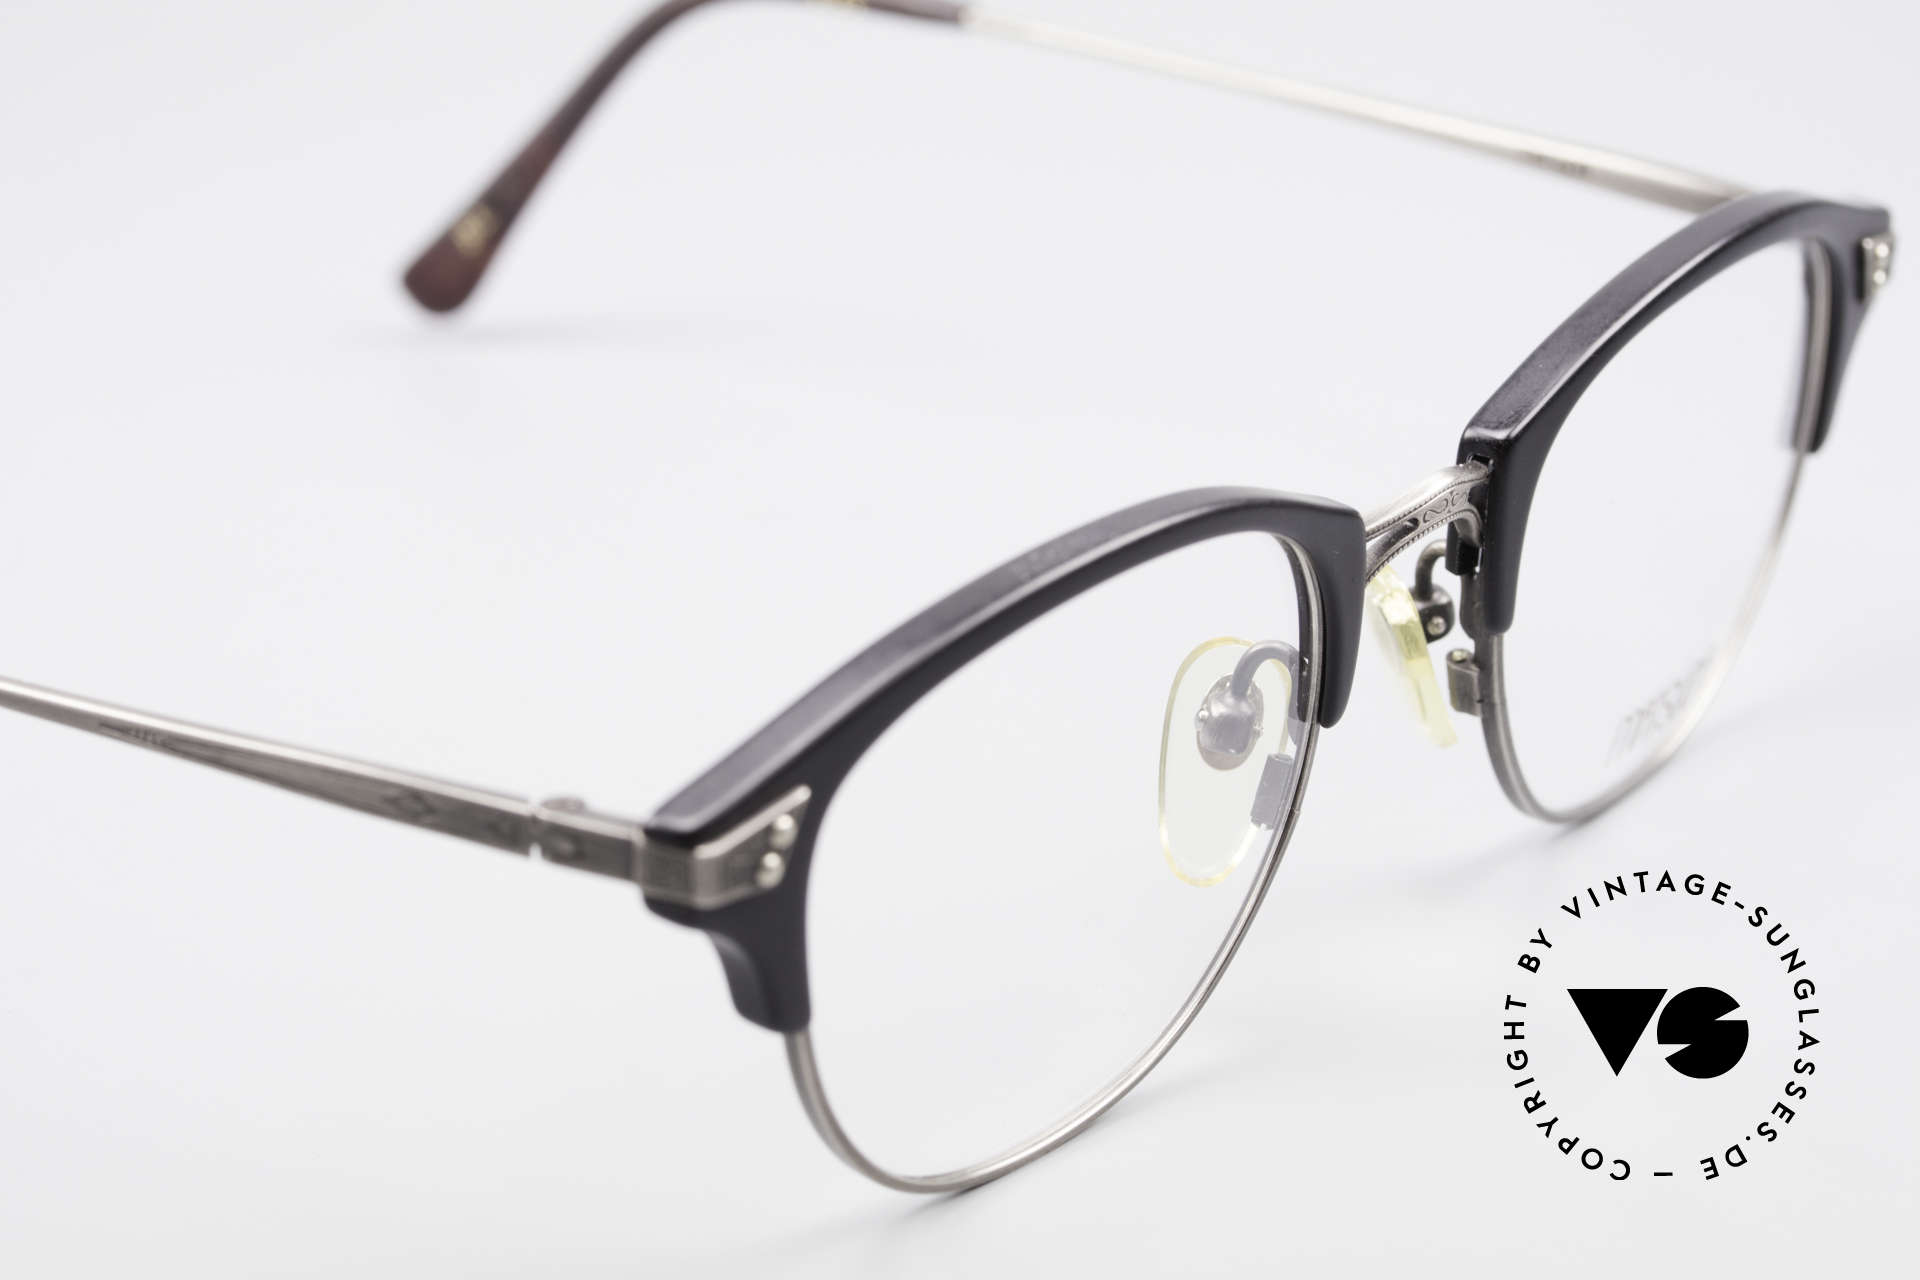 Matsuda 2840 Panto Luxury Eyeglass-Frame, unworn rarity (a 'must have' for all lovers of quality), Made for Men and Women